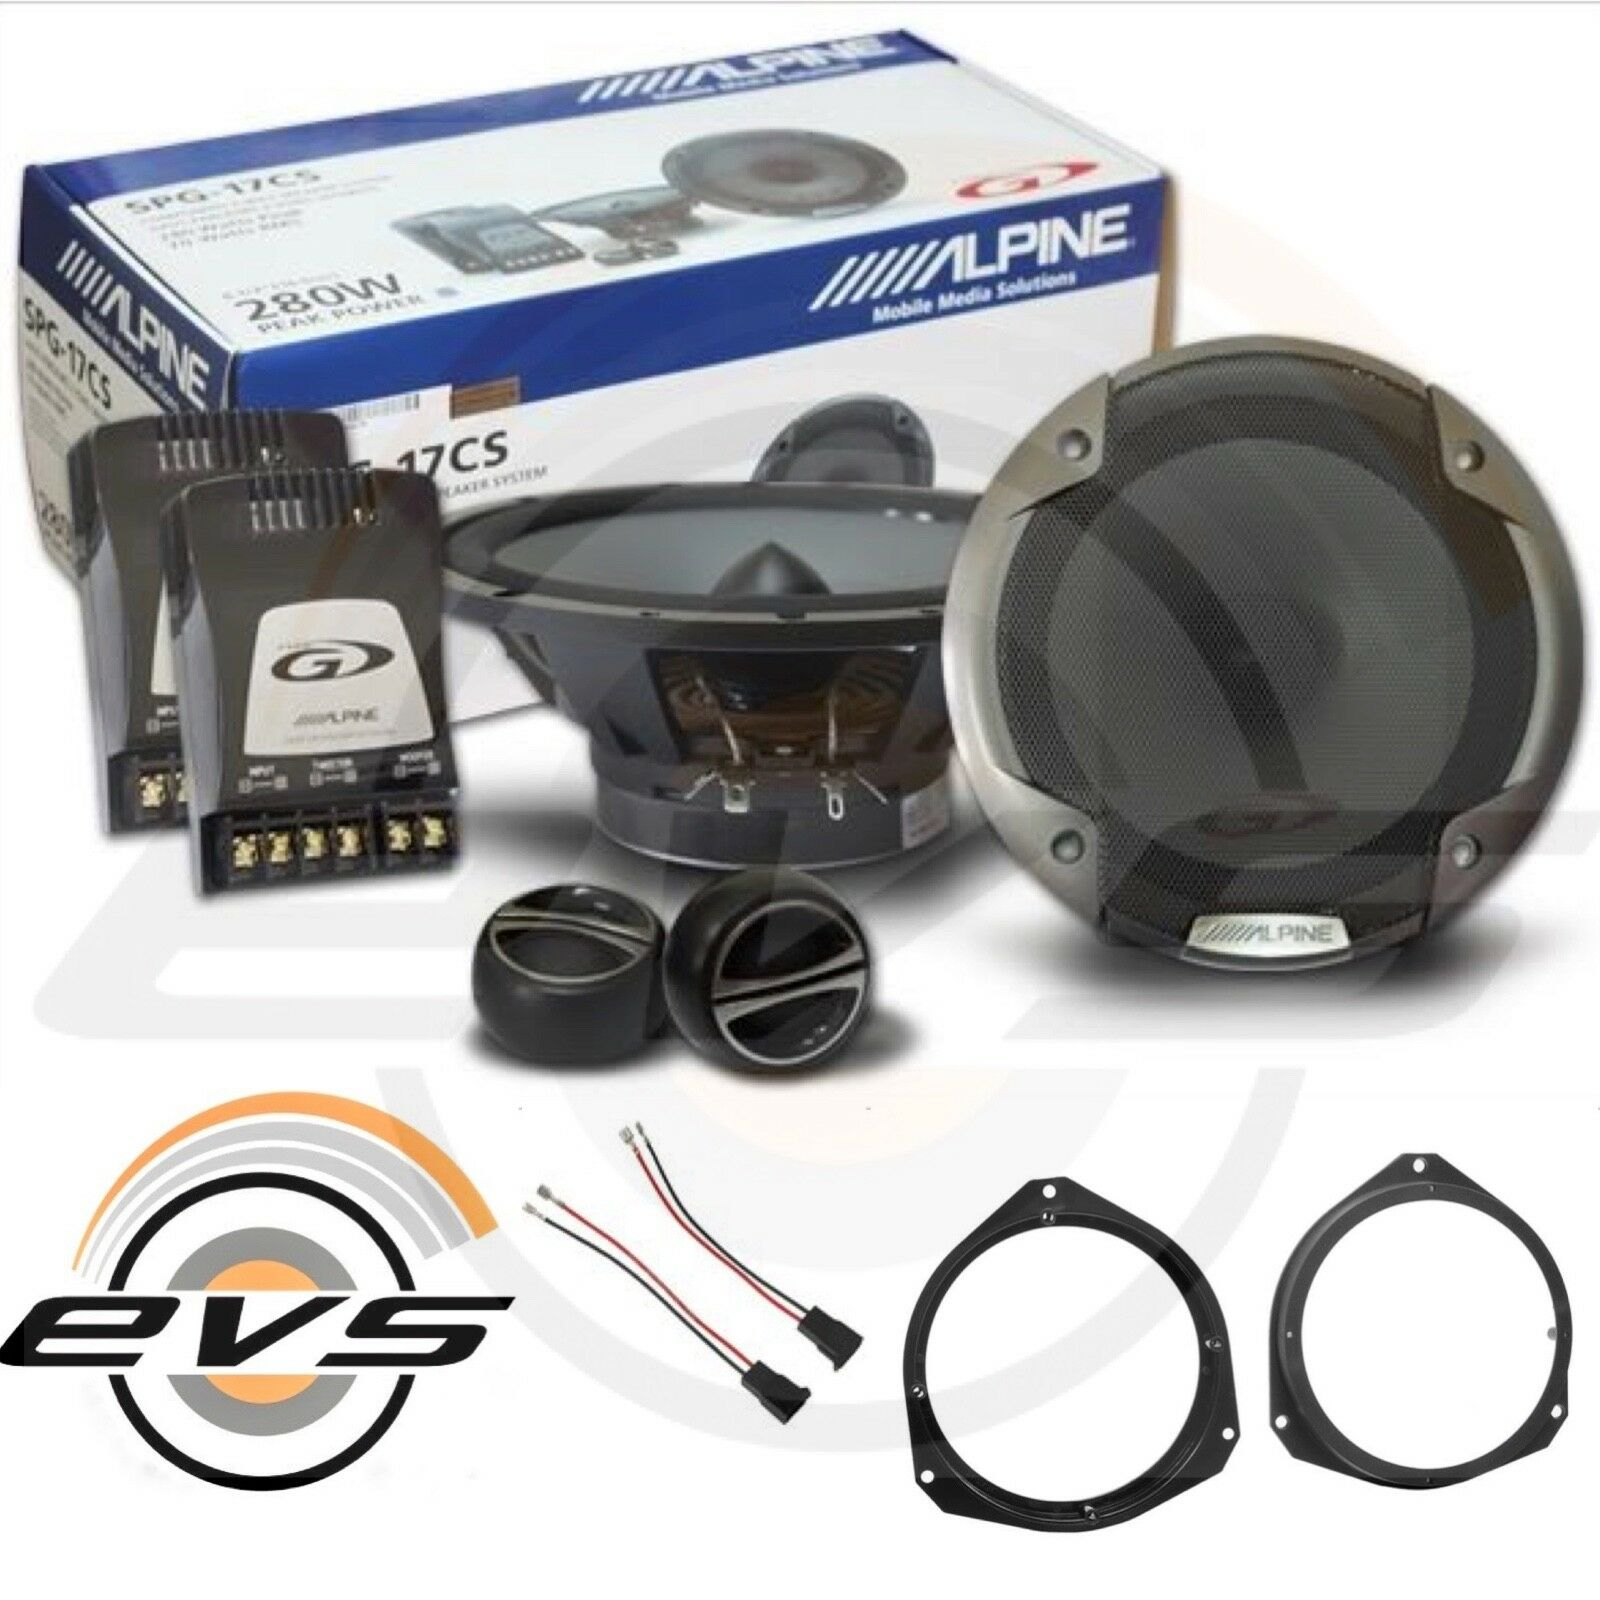 ALPINE SPG-17CS Kit Altoparlanti a 2 vie separate 16,5 cm 6,5/'/' 280W COPPIA